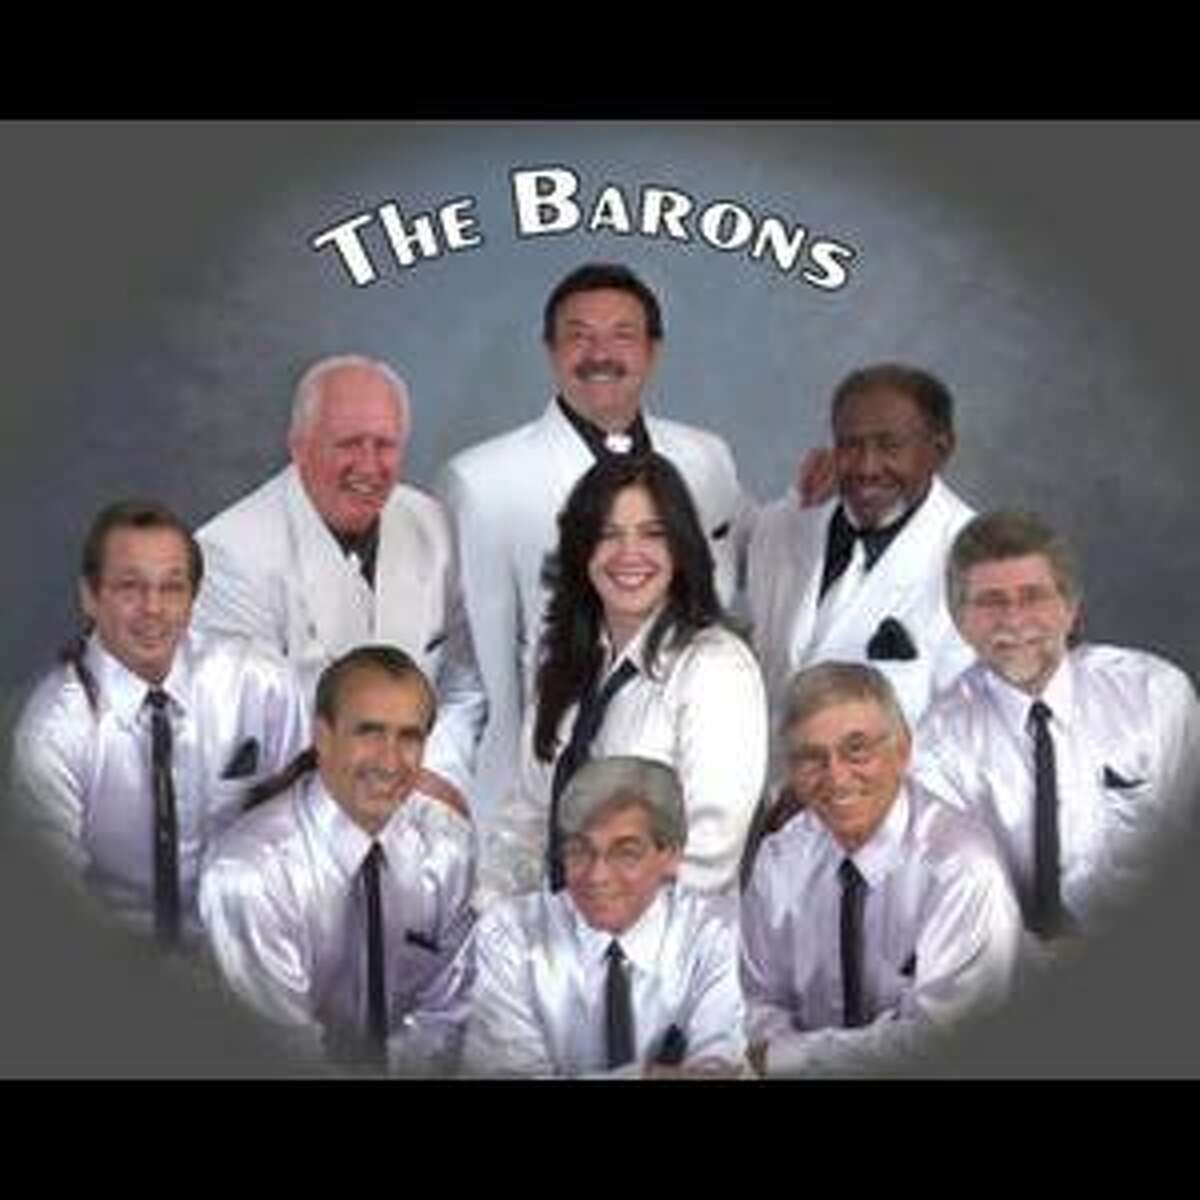 The Barons will finish off the summer concert series at the Town Hall gazebo on Sept. 3.